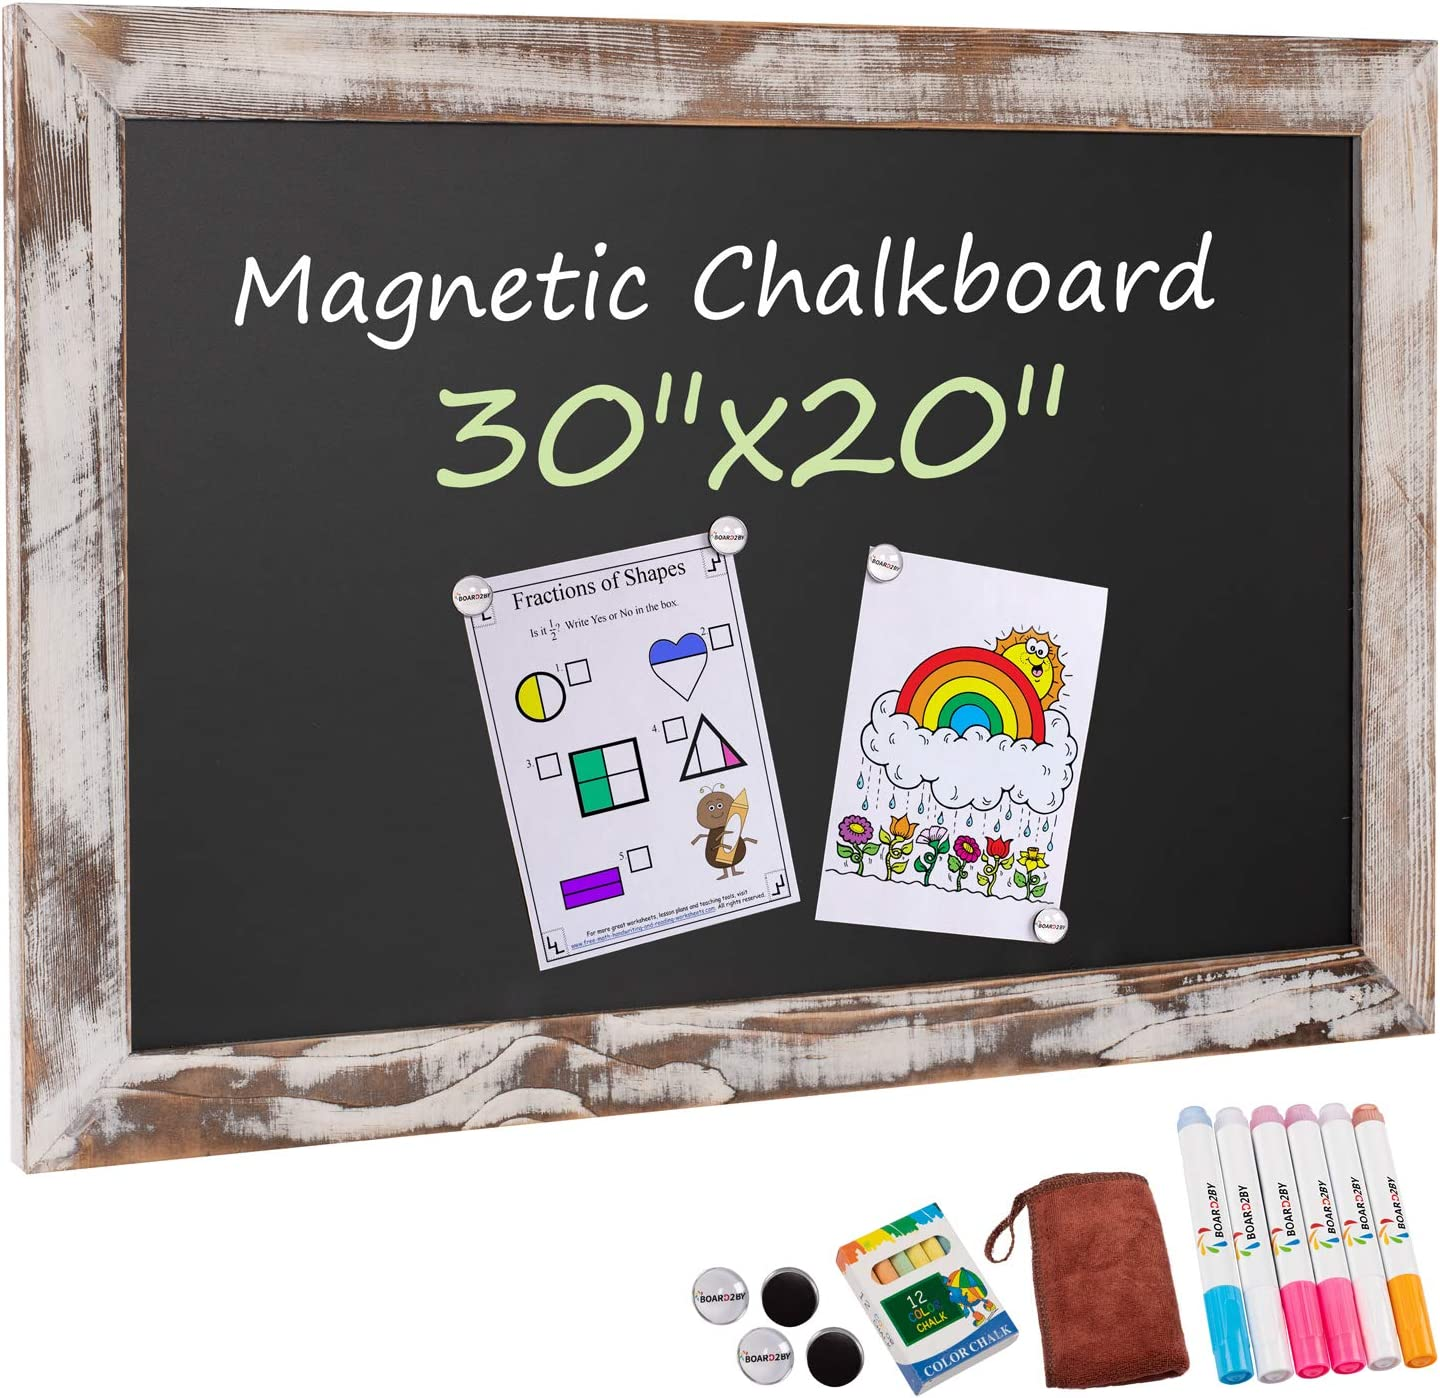 Amazon Com Board2by Rustic Wood Framed Magnetic Chalkboard 20 X 30 Large Hanging Chalk Board Sign For Kids Non Porous Wall Blackboard Wedding Kitchen Restaurant Menu And Home With 4 Unique Magnets